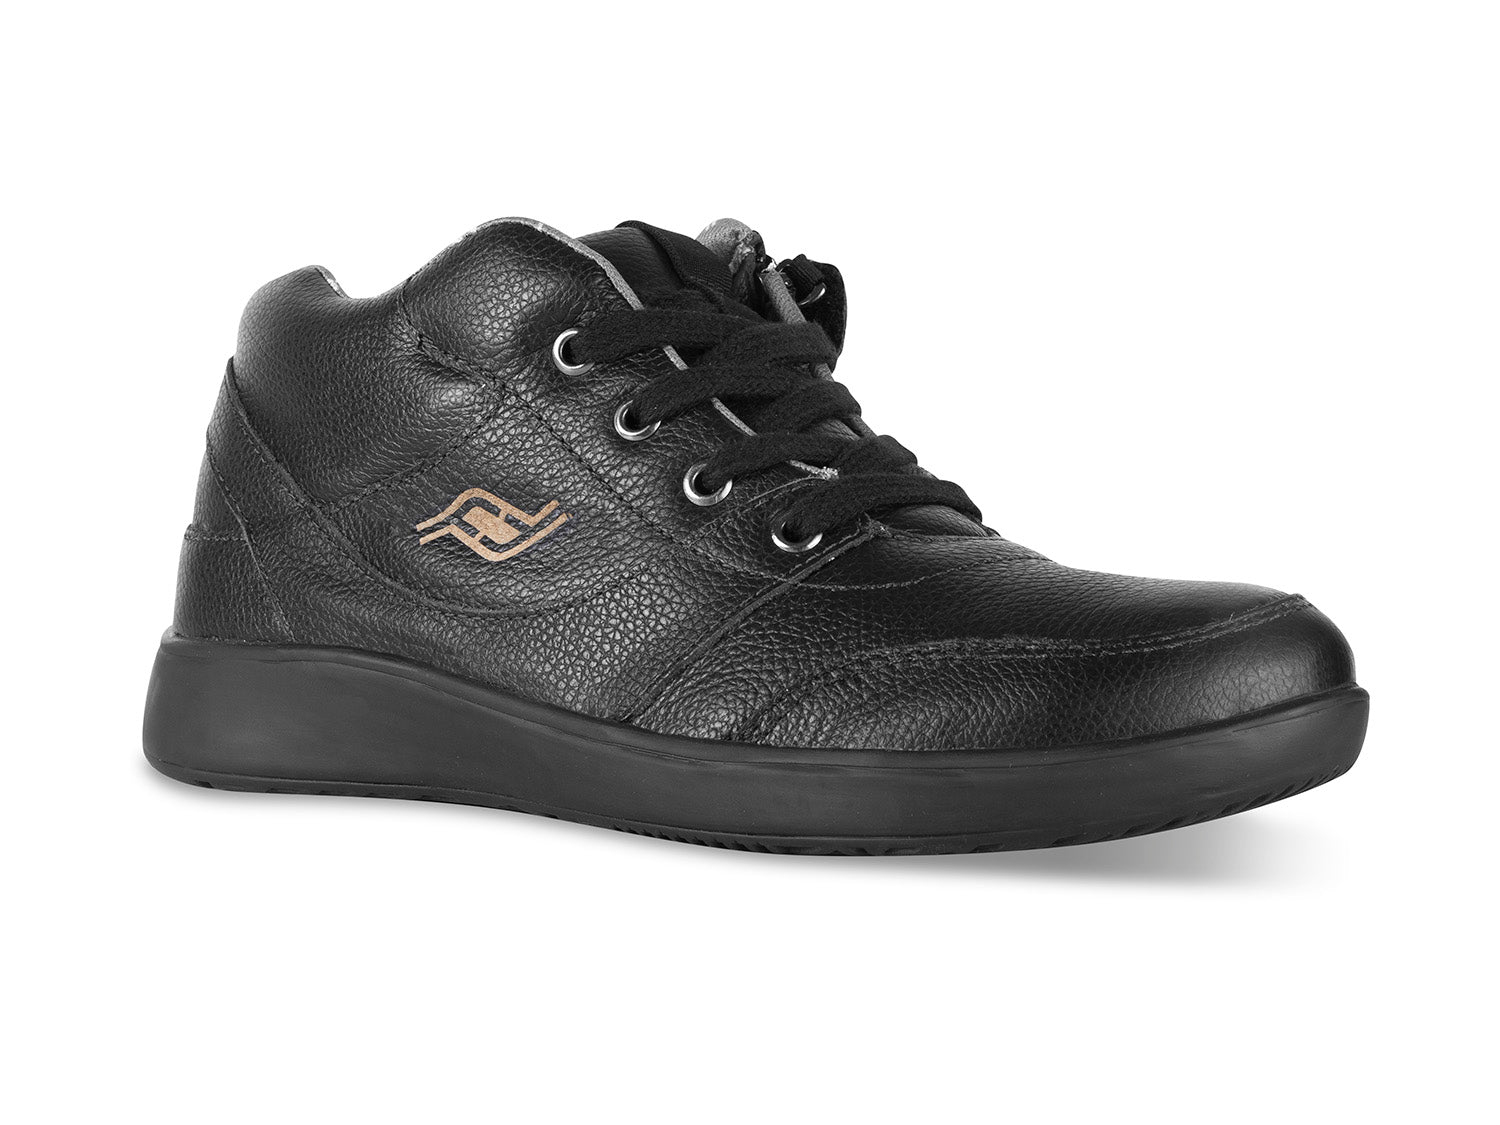 Women's Medimoto Black Leather Shoe